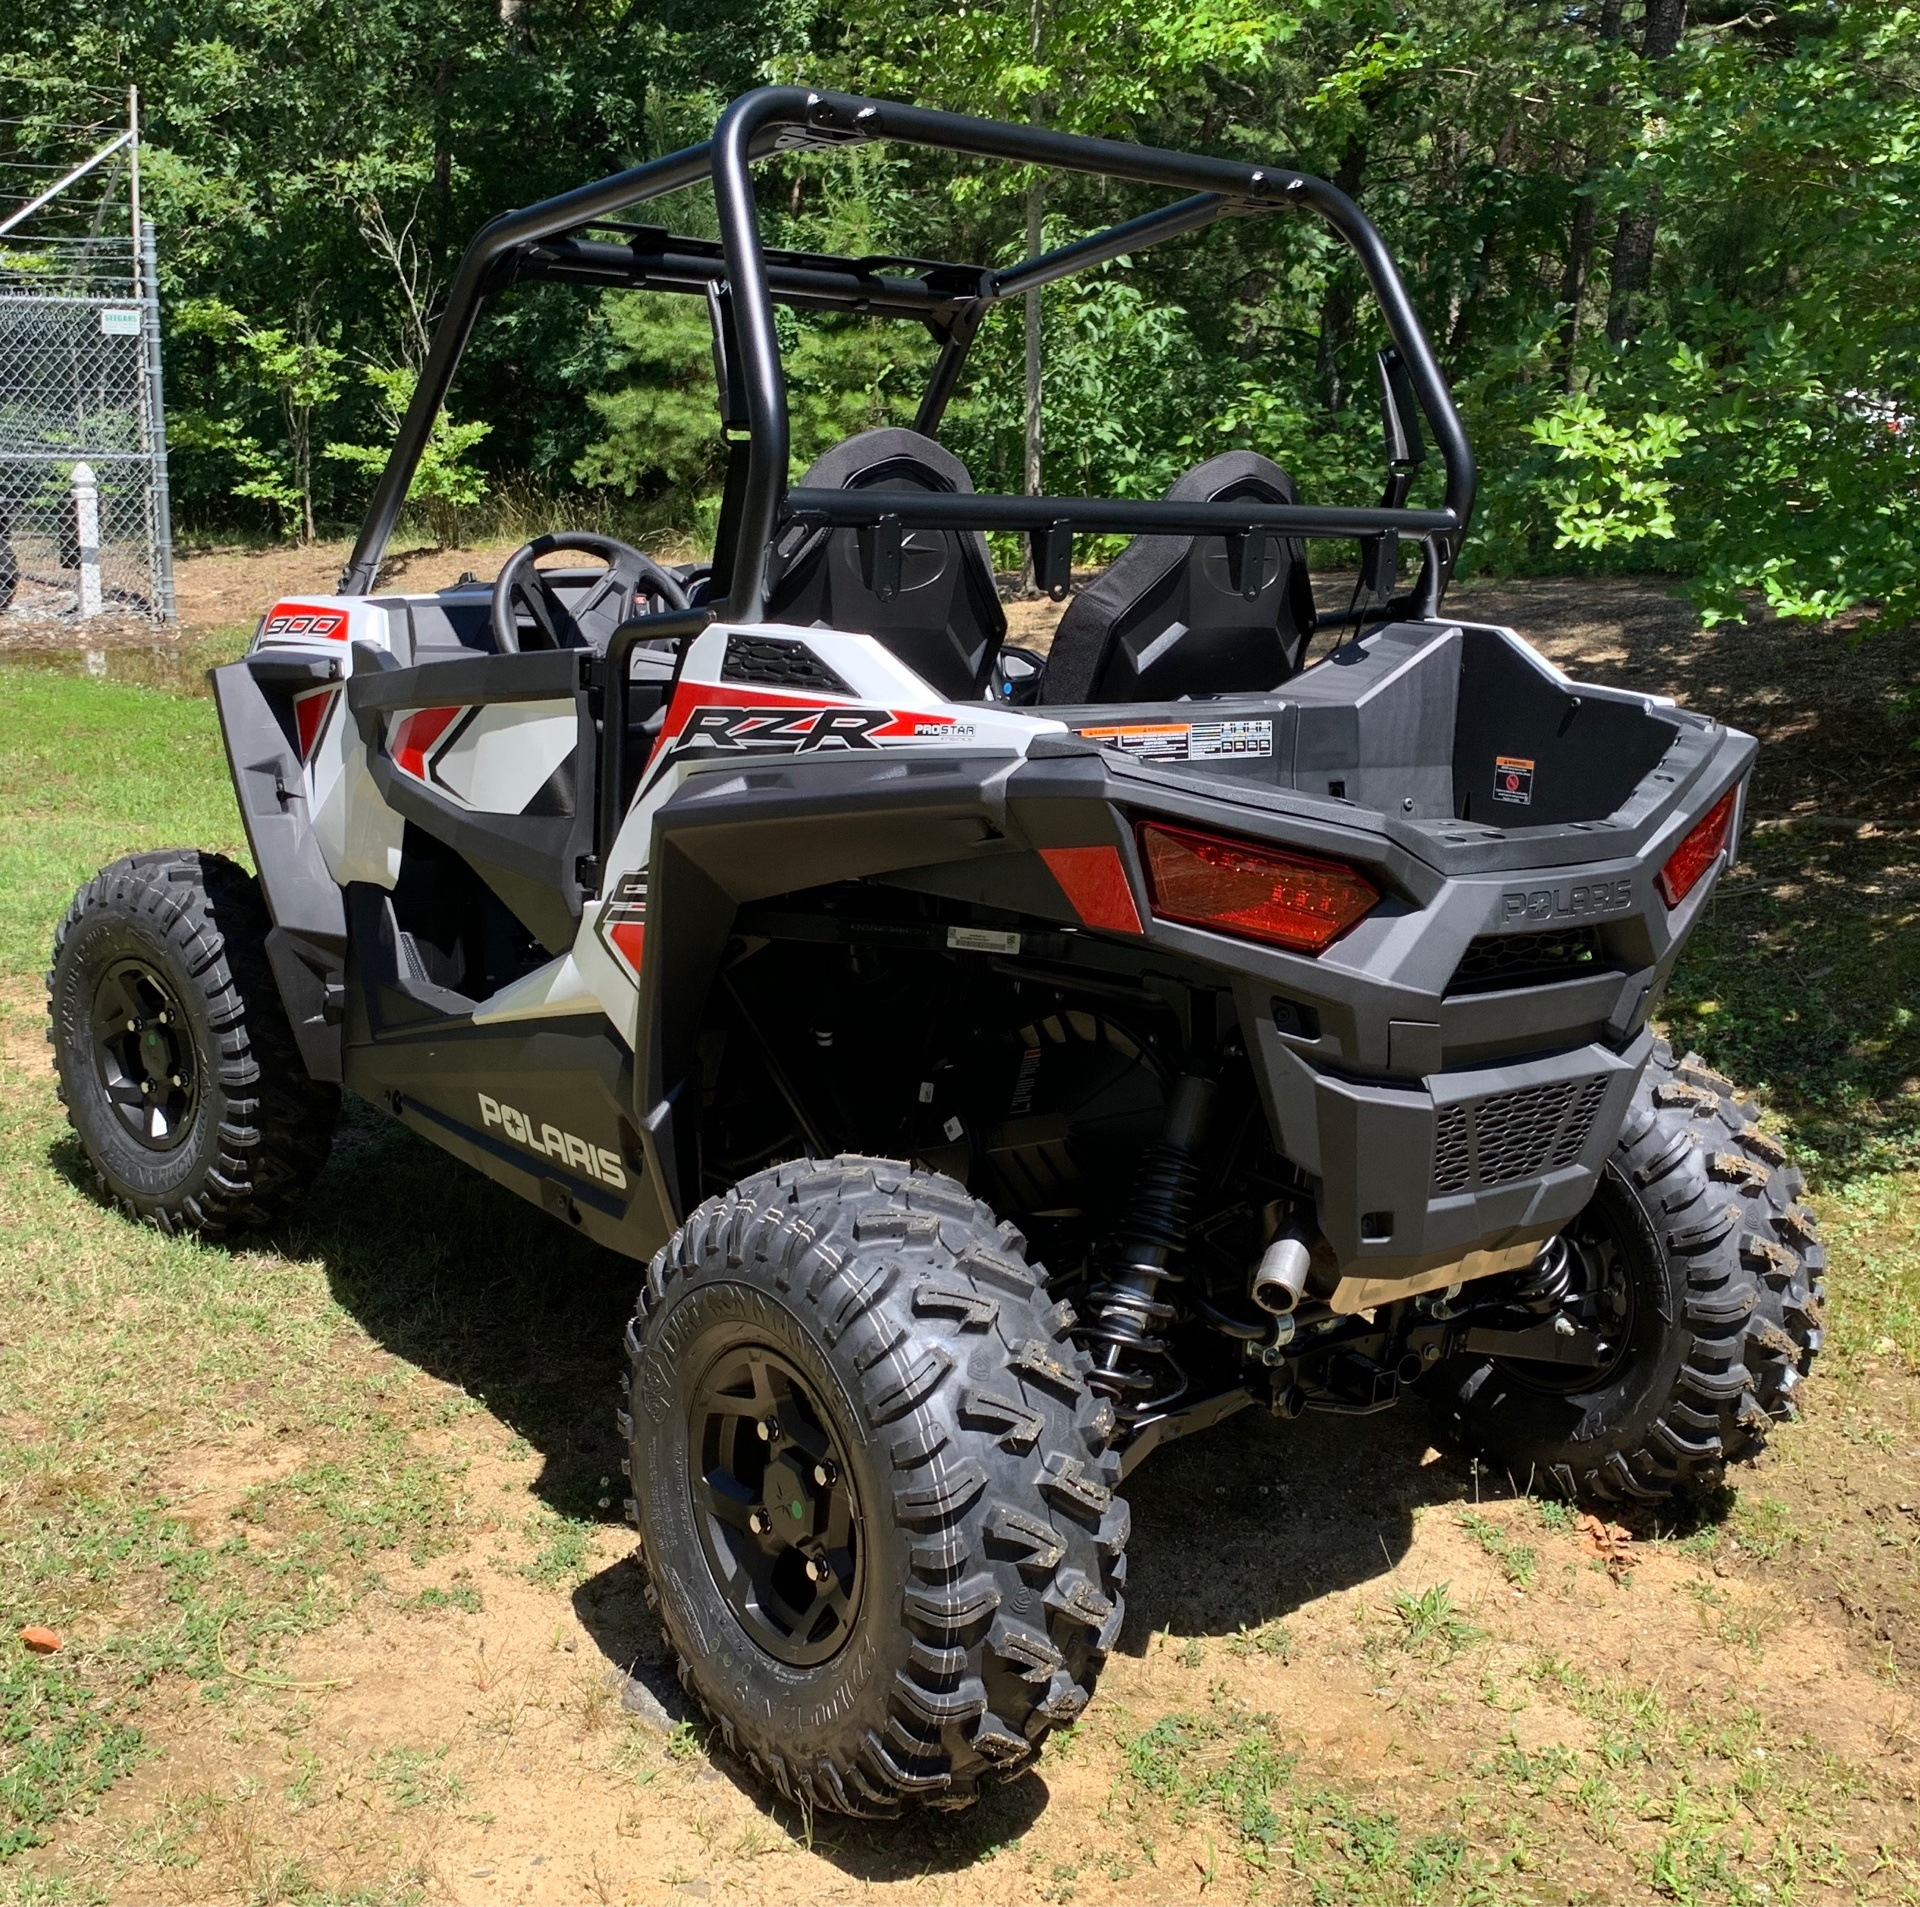 2019 Polaris RZR S 900 in High Point, North Carolina - Photo 7